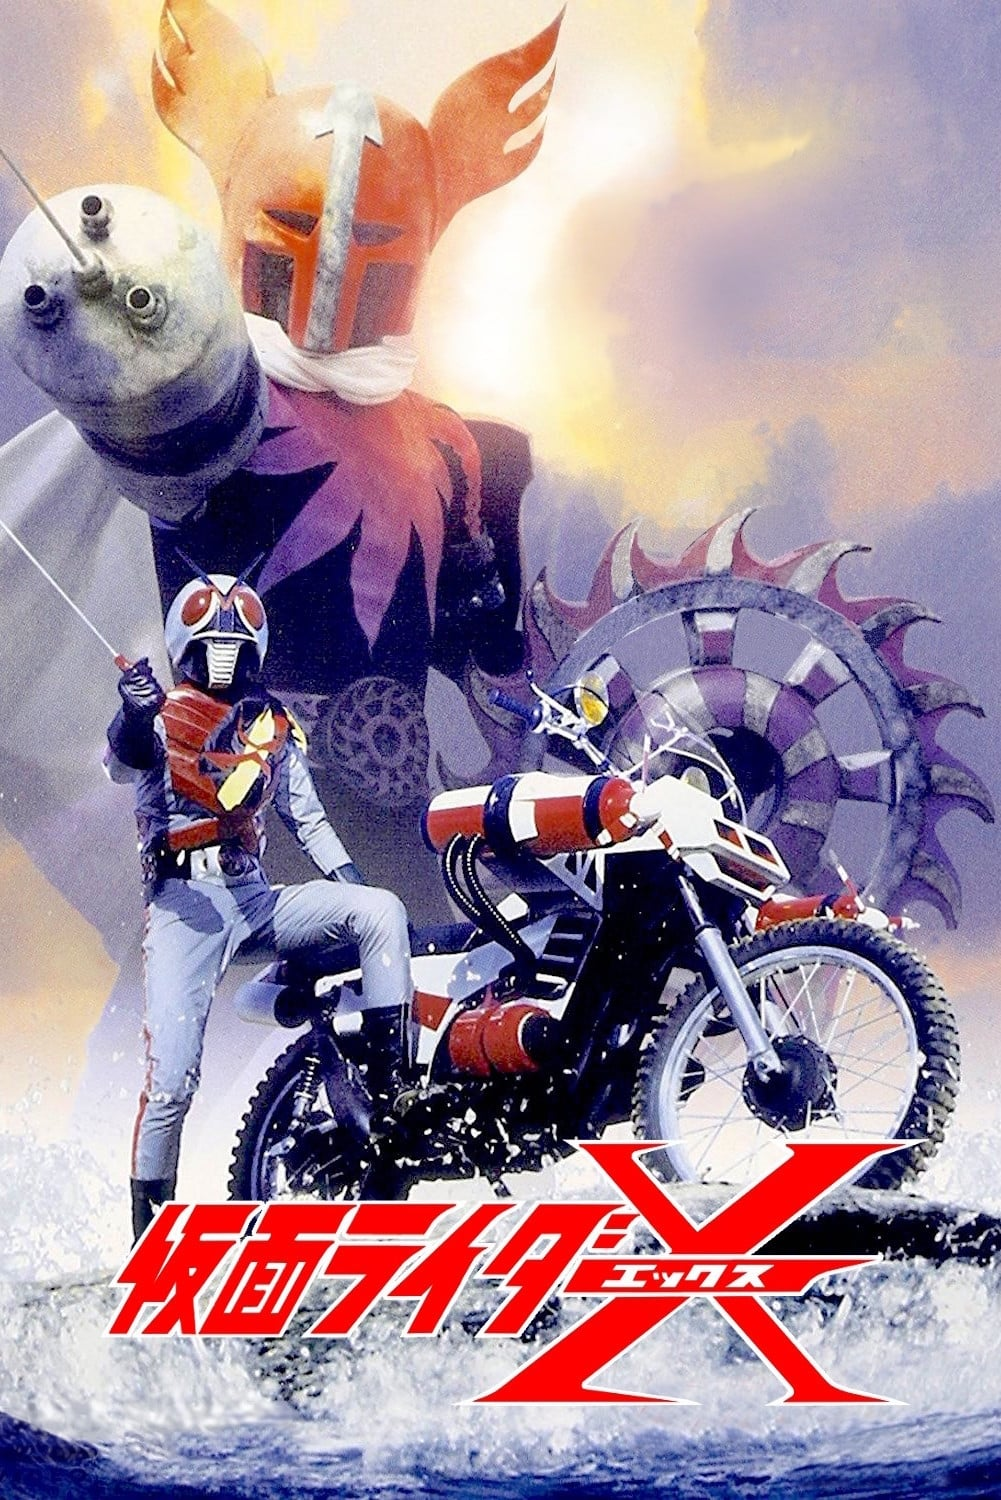 Kamen Rider - Season 21 Episode 31 : Repaying a Favor, Scheme, Purple Medals Season 3